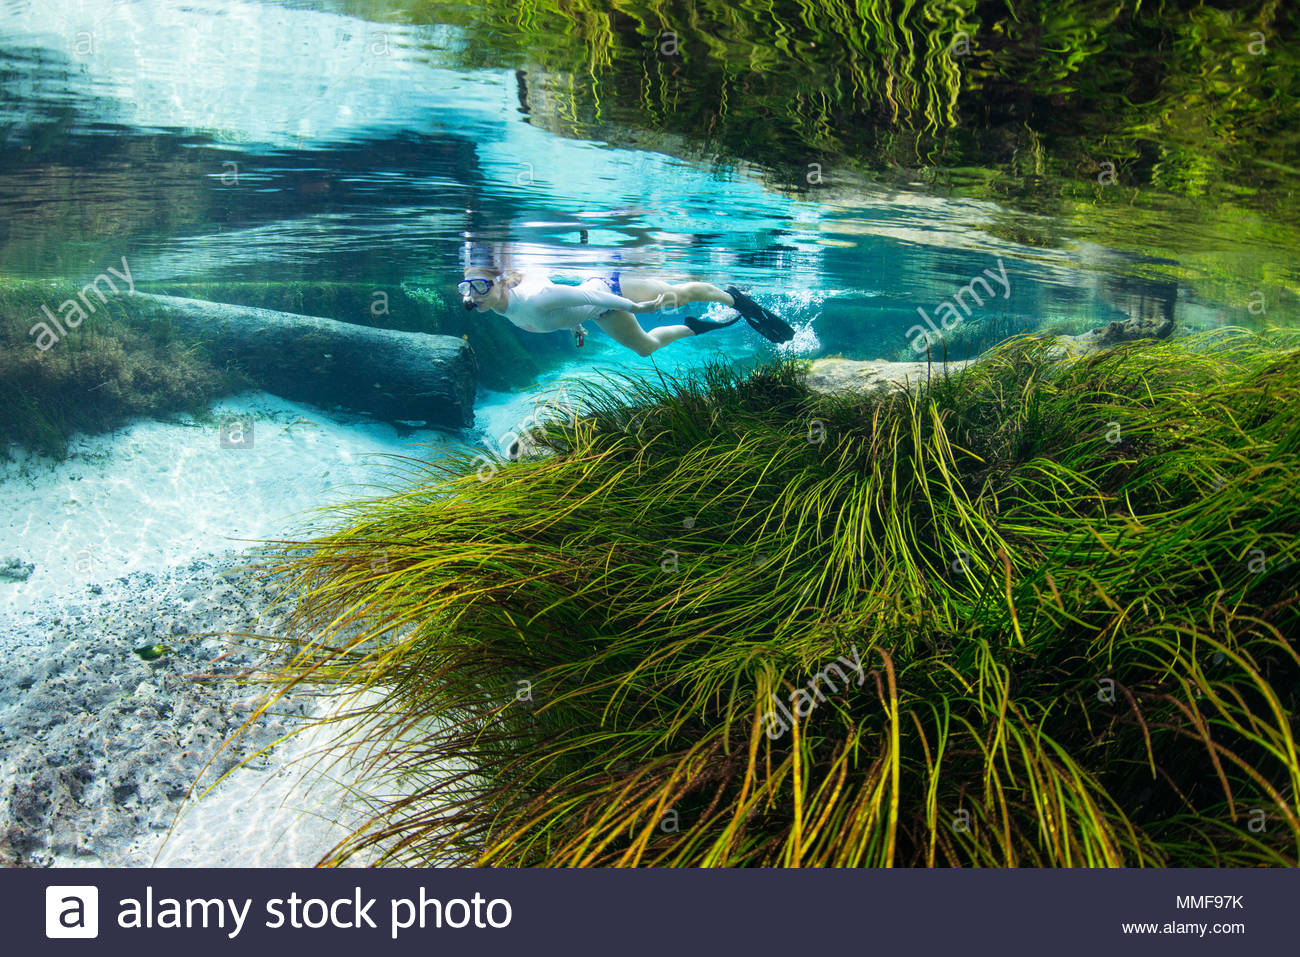 A woman snorkels in the freshwater spring run at Blue Spring as underwater grasses swirl in the strong current. - Stock Image